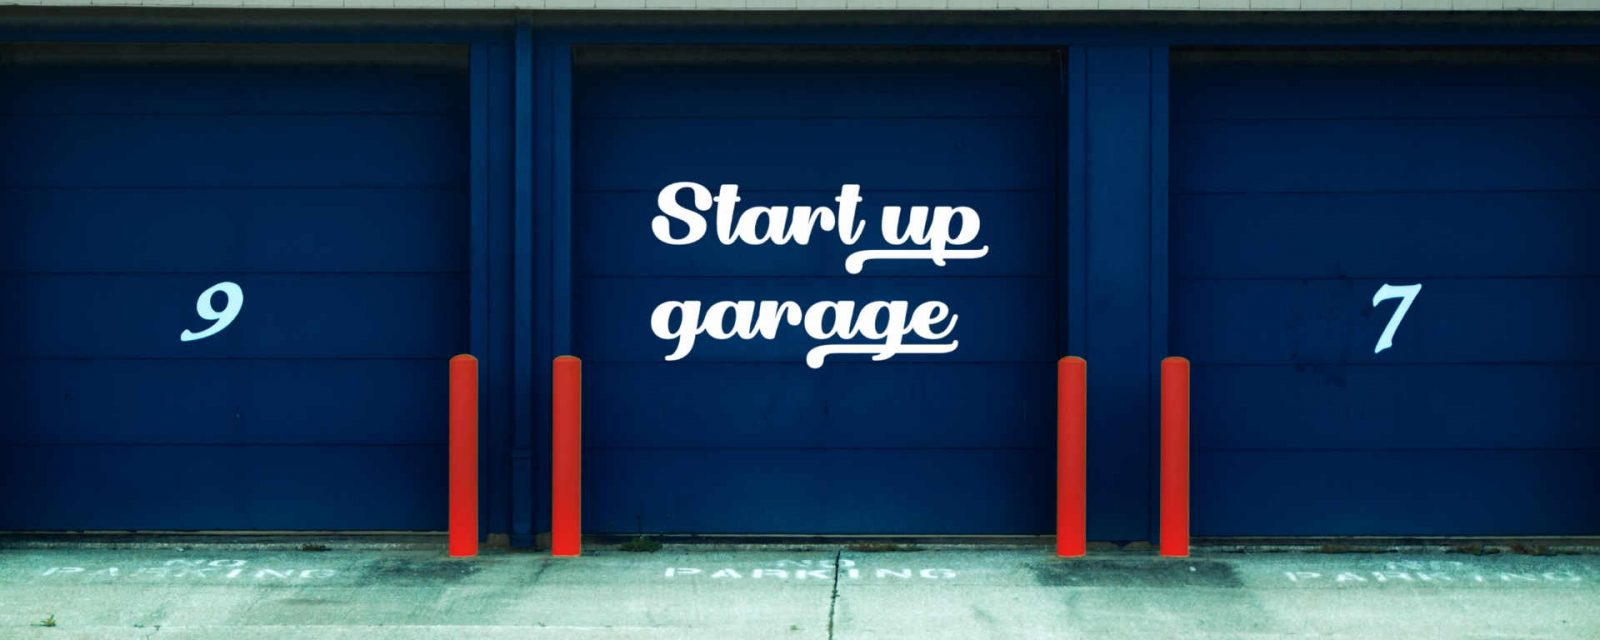 No one cares about your sh*tty start-up!